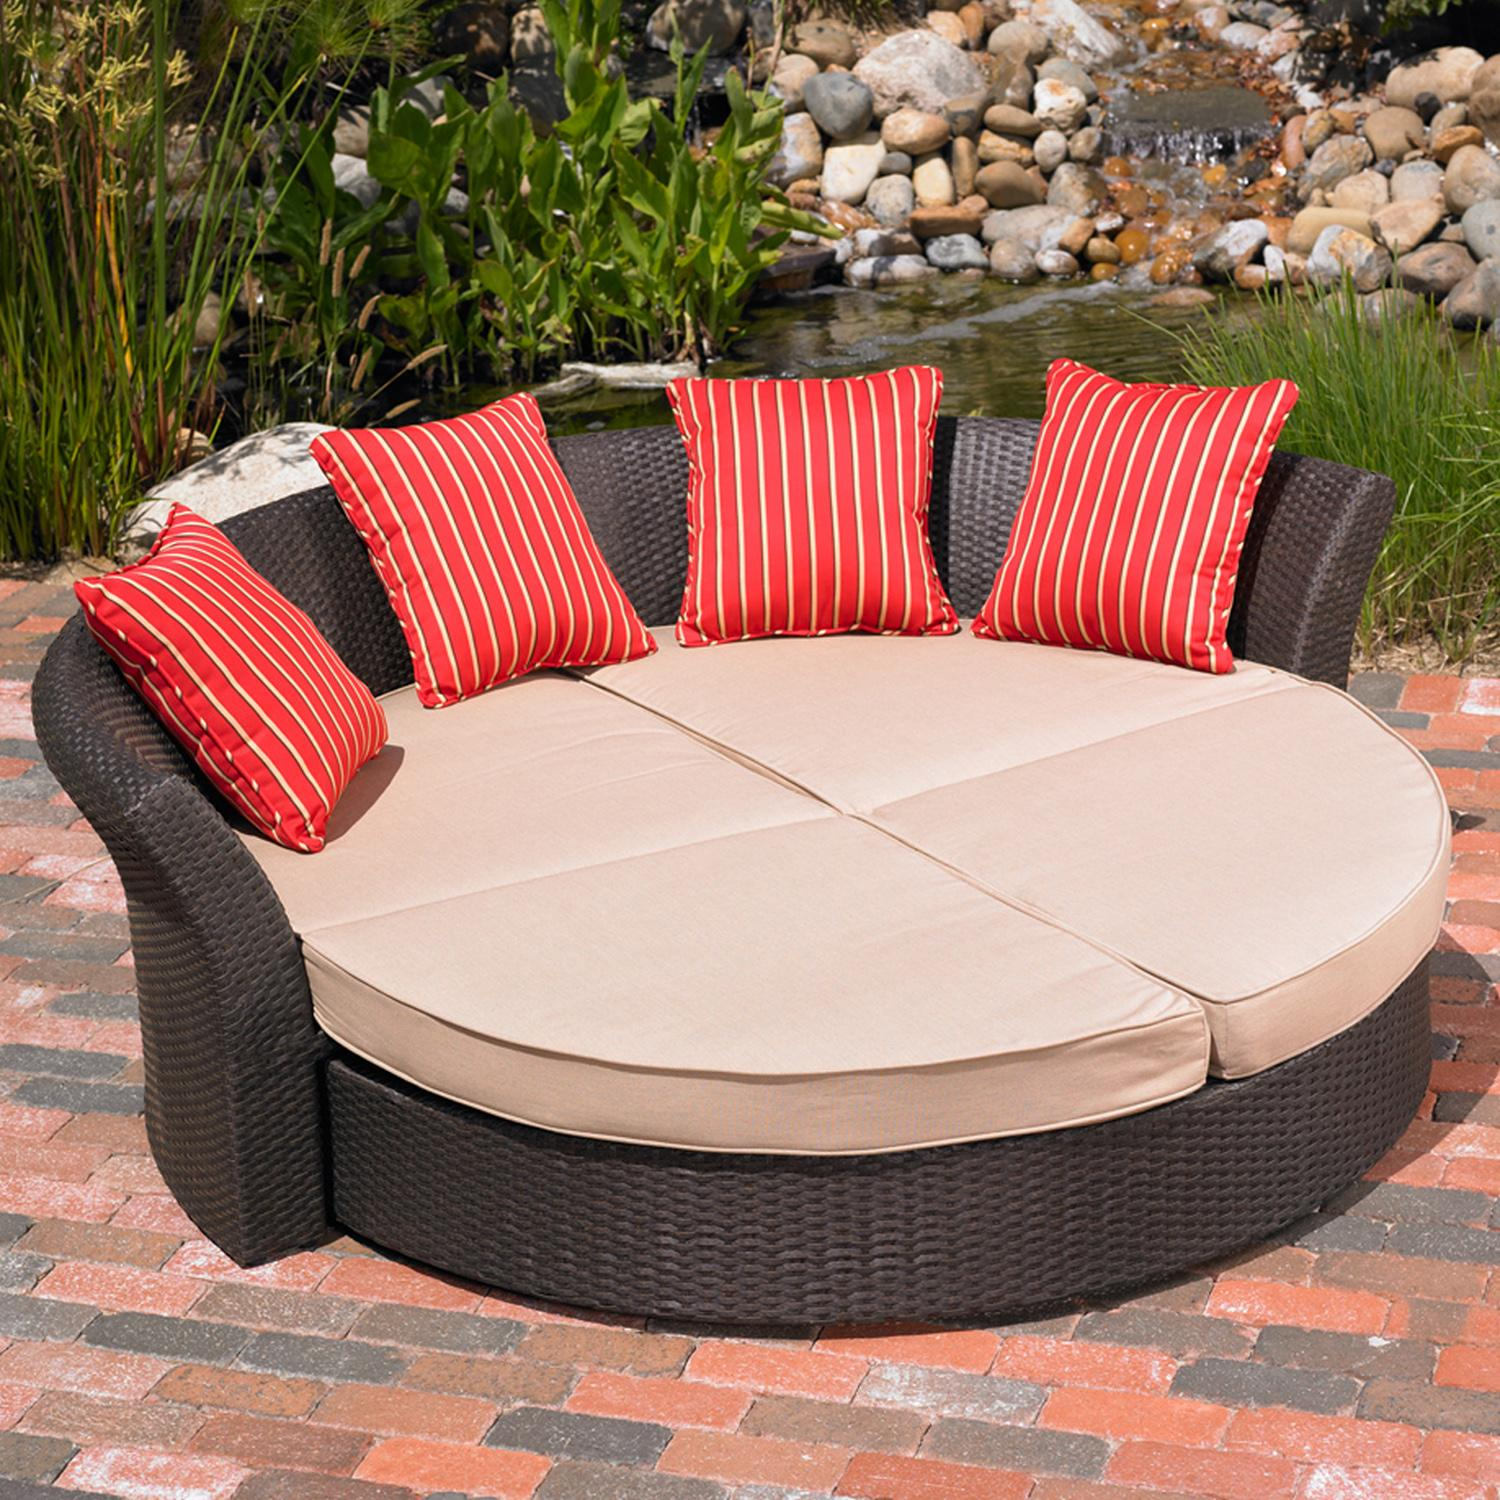 Mission Hills 26768 Co Corinth Daybed Patio Sofas Patio Lawn Garden